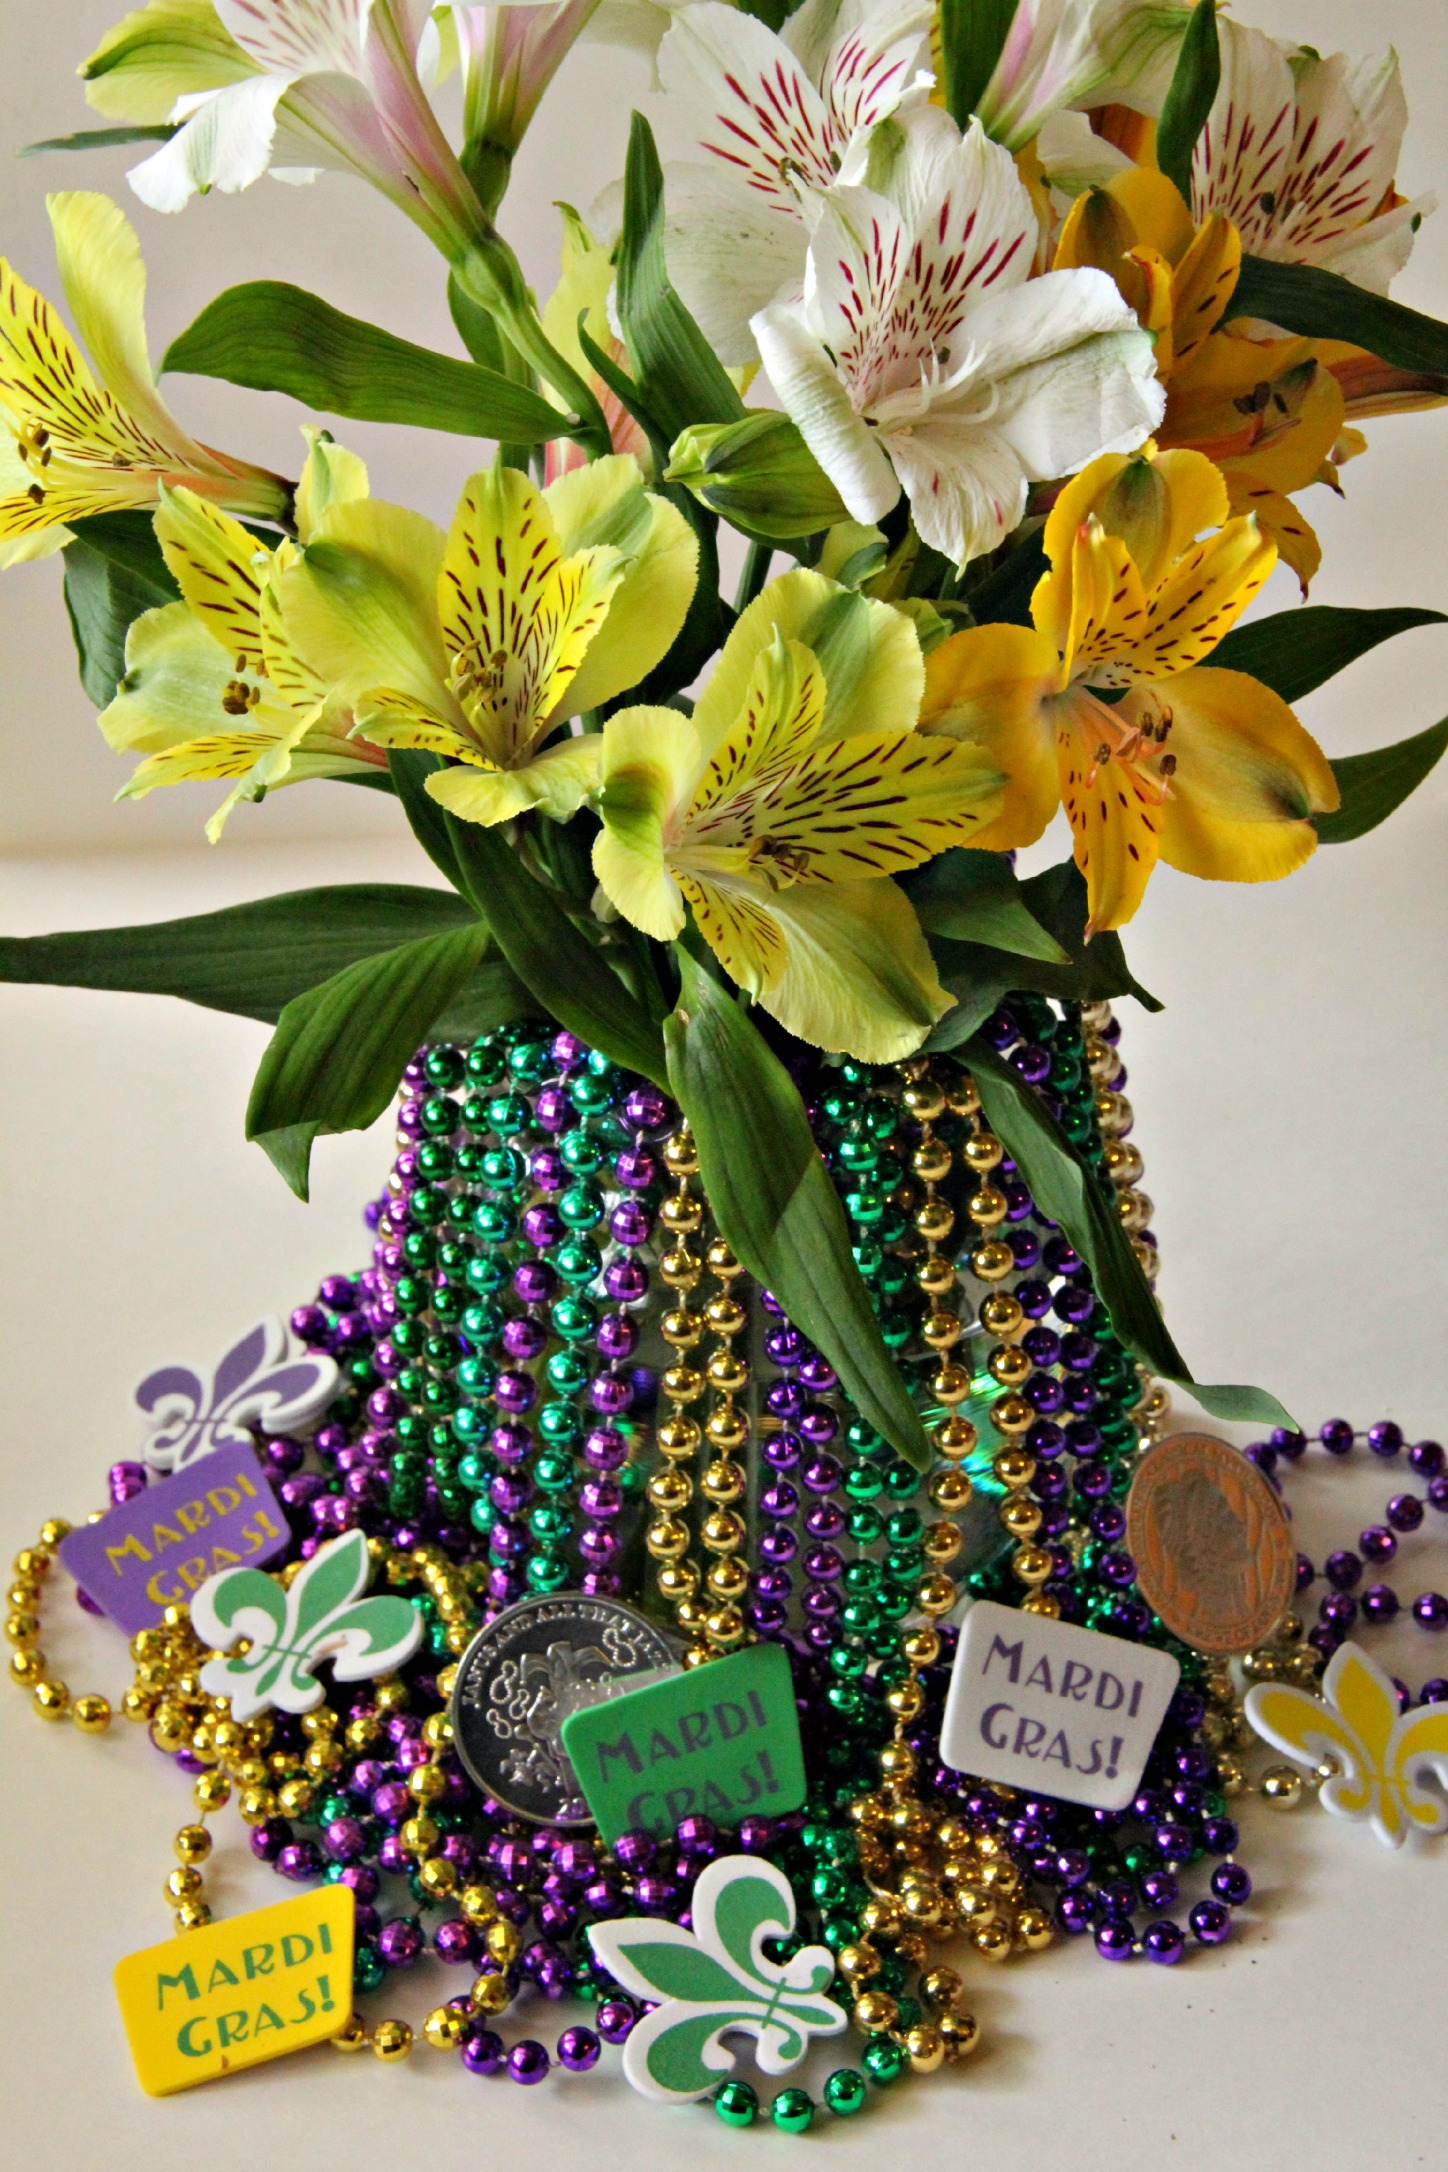 Low prices on Mardi Gras centerpieces at Oriental Trading. Mardi Gras table centerpieces in different styles to help add a touch of New Orleans to your Mardi Gras decorations.